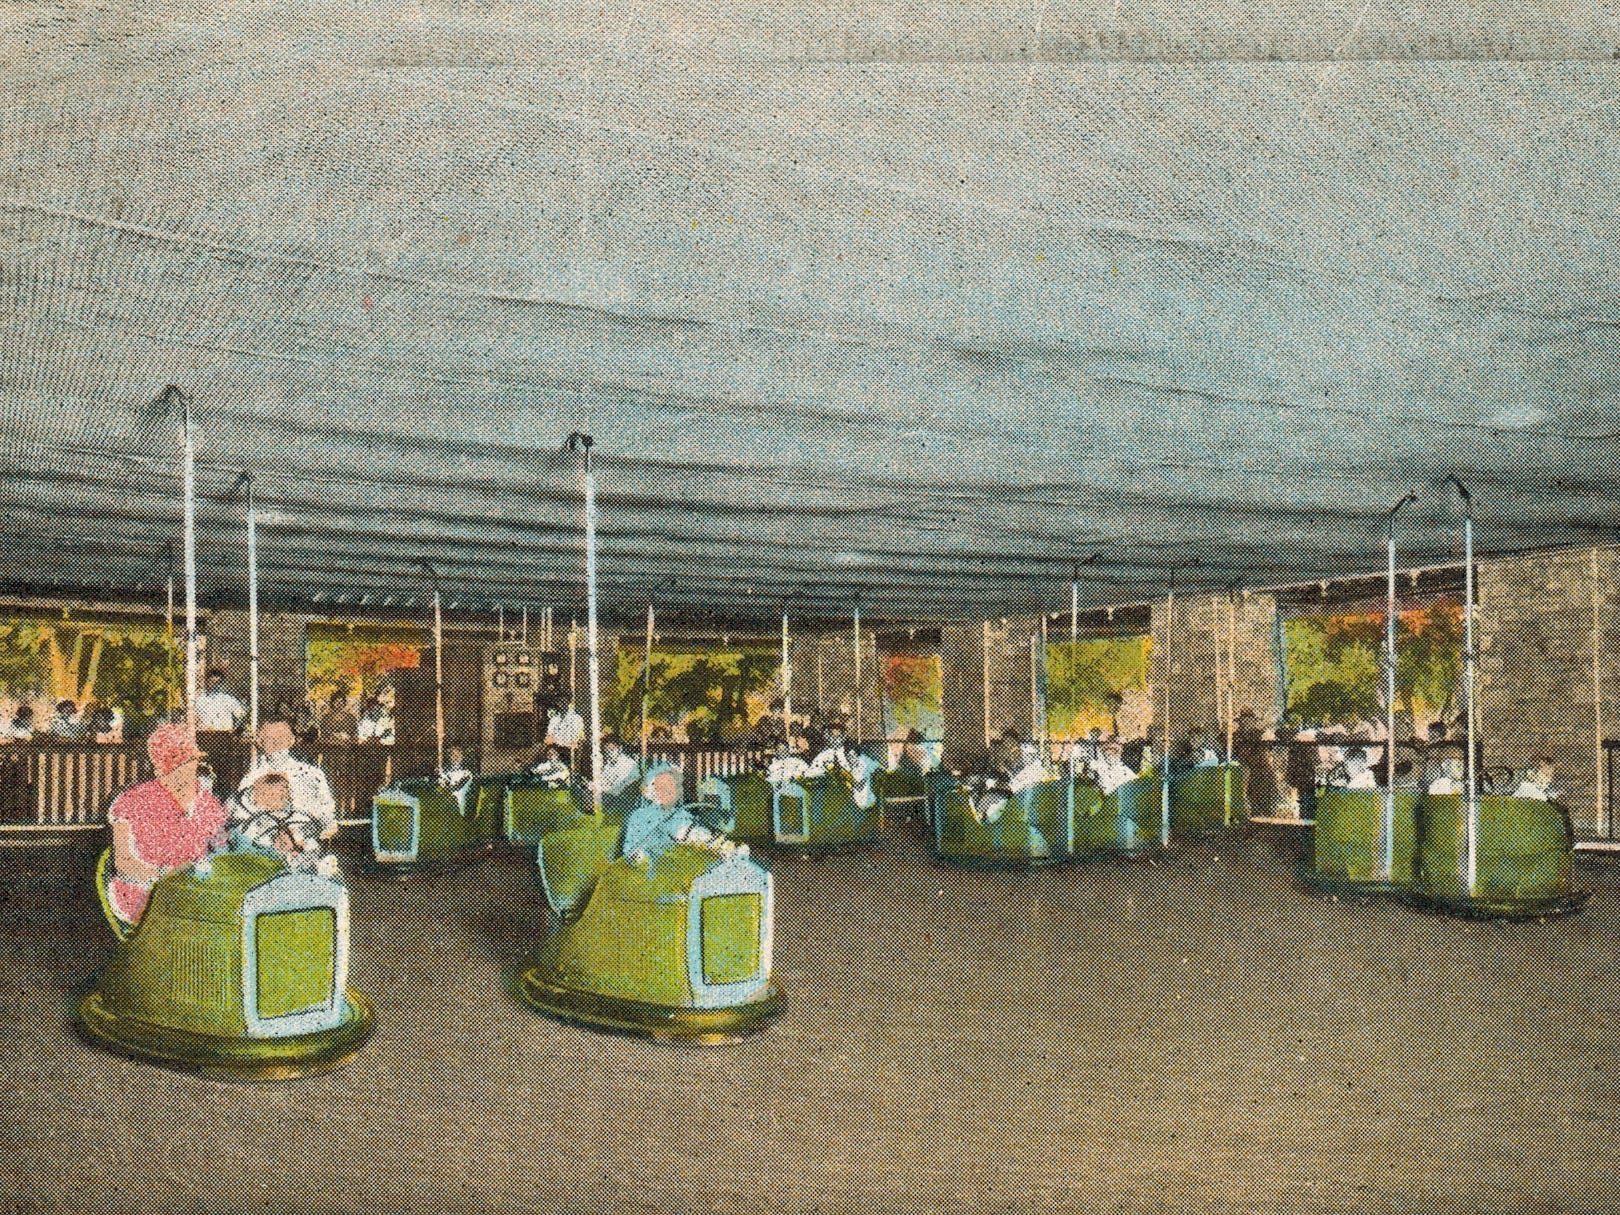 They included long contact poles that scraped along an electrified grid ceiling and transferred power to the cars. The distinctive poles remain to this day on many bumper car attractions